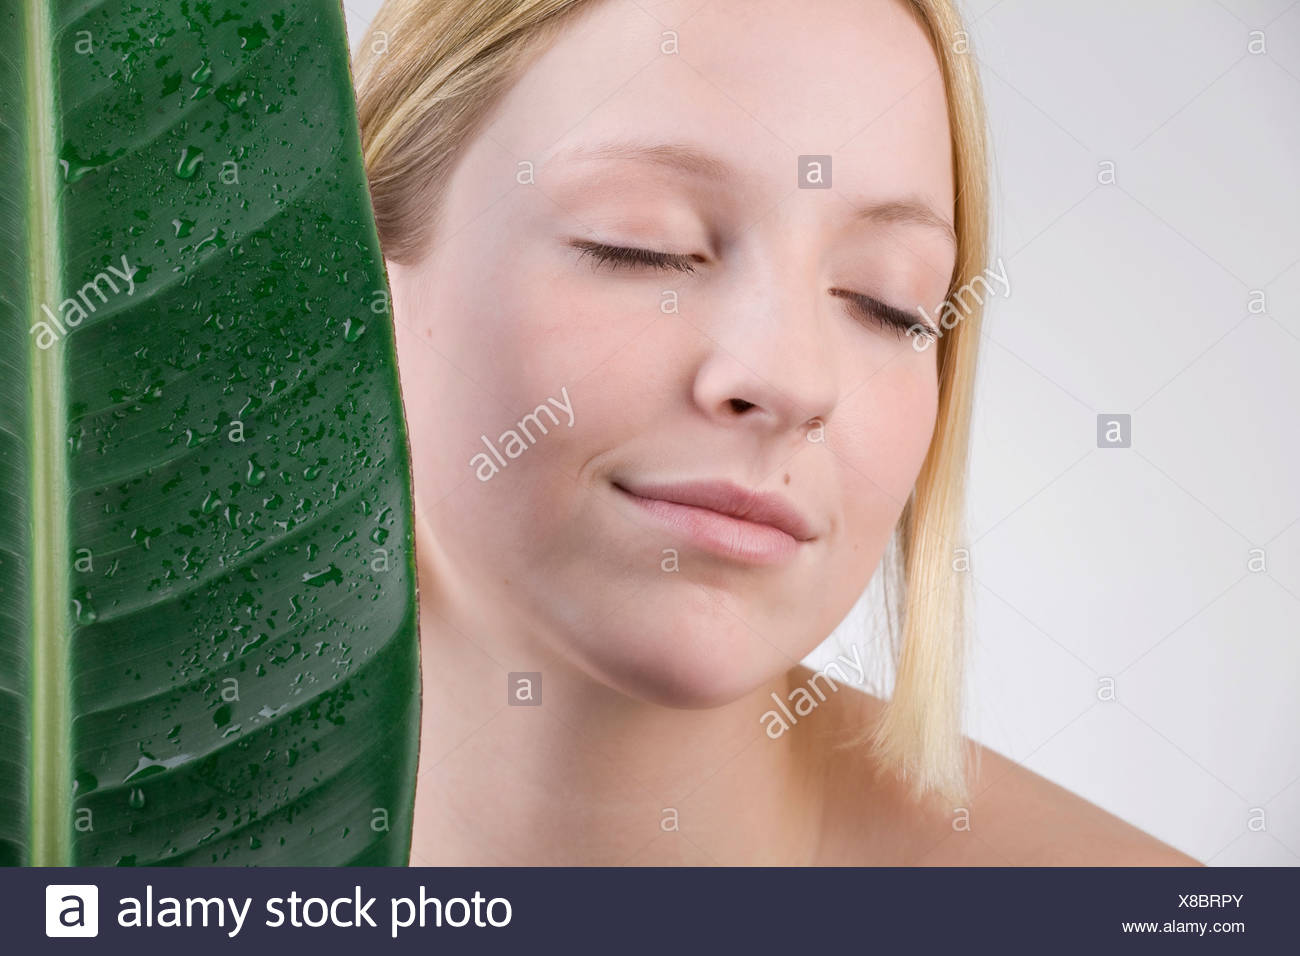 Young woman next to a leaf, moisture and sensitive skin - Stock Image